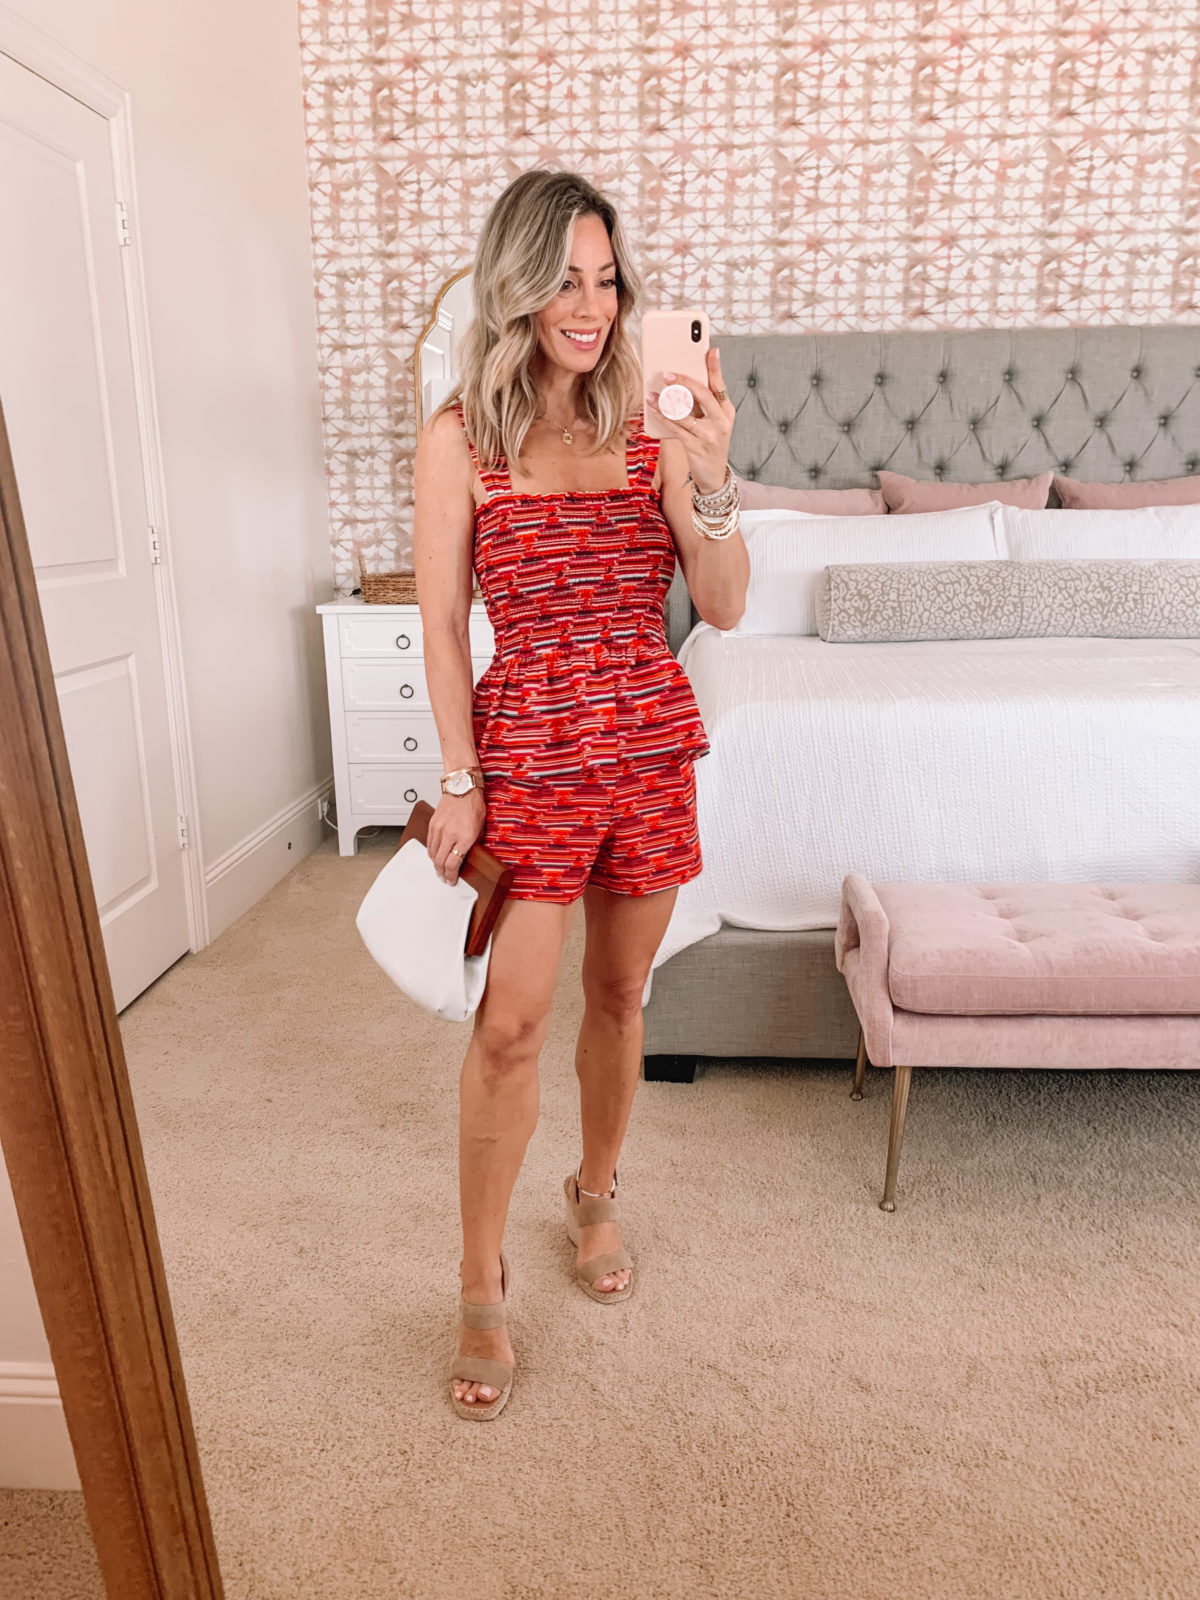 Dressing Room Finds LOFT, Ikat Peplum Top and Shorts with Wedges and Clutch